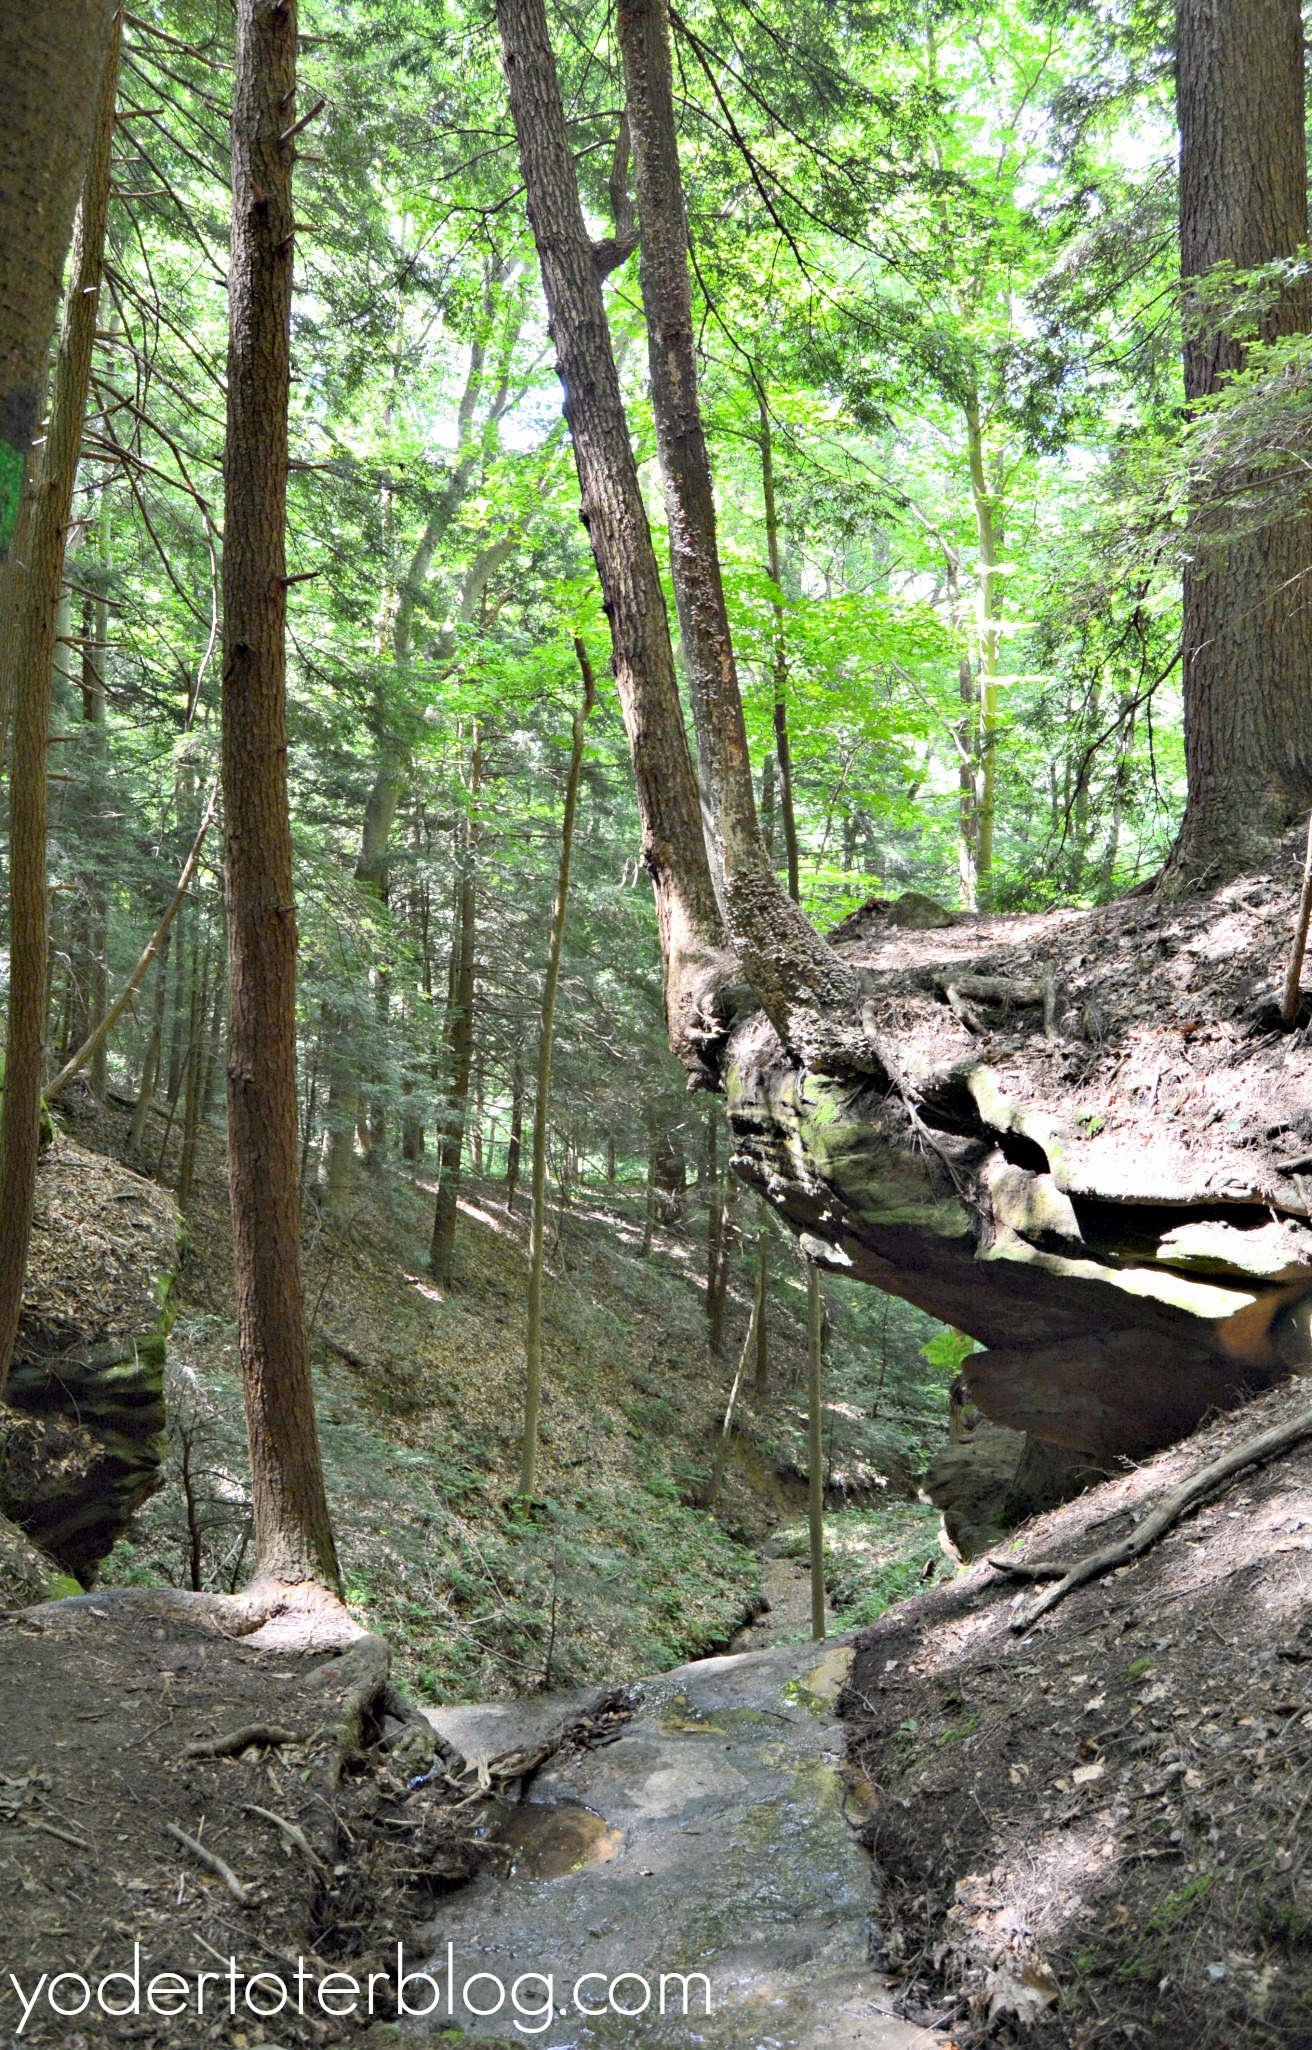 The cliffs on the Whispering Cave Trail in Hocking Hills, Ohio.  Hiking with kids on this trail requires caution.